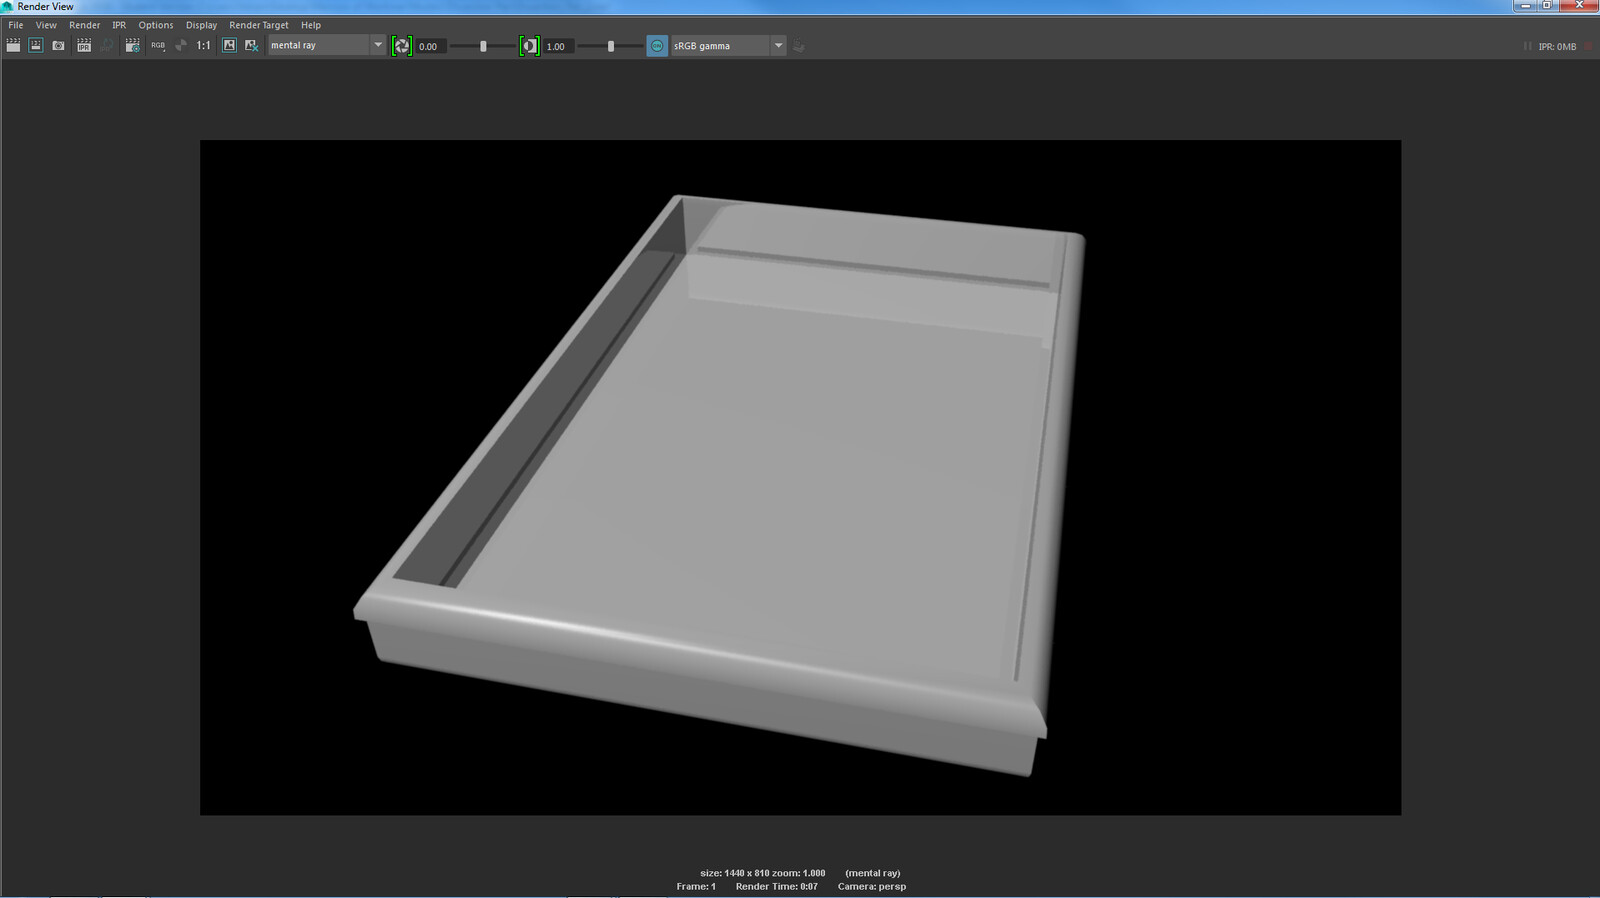 The bare model of the dissection pan